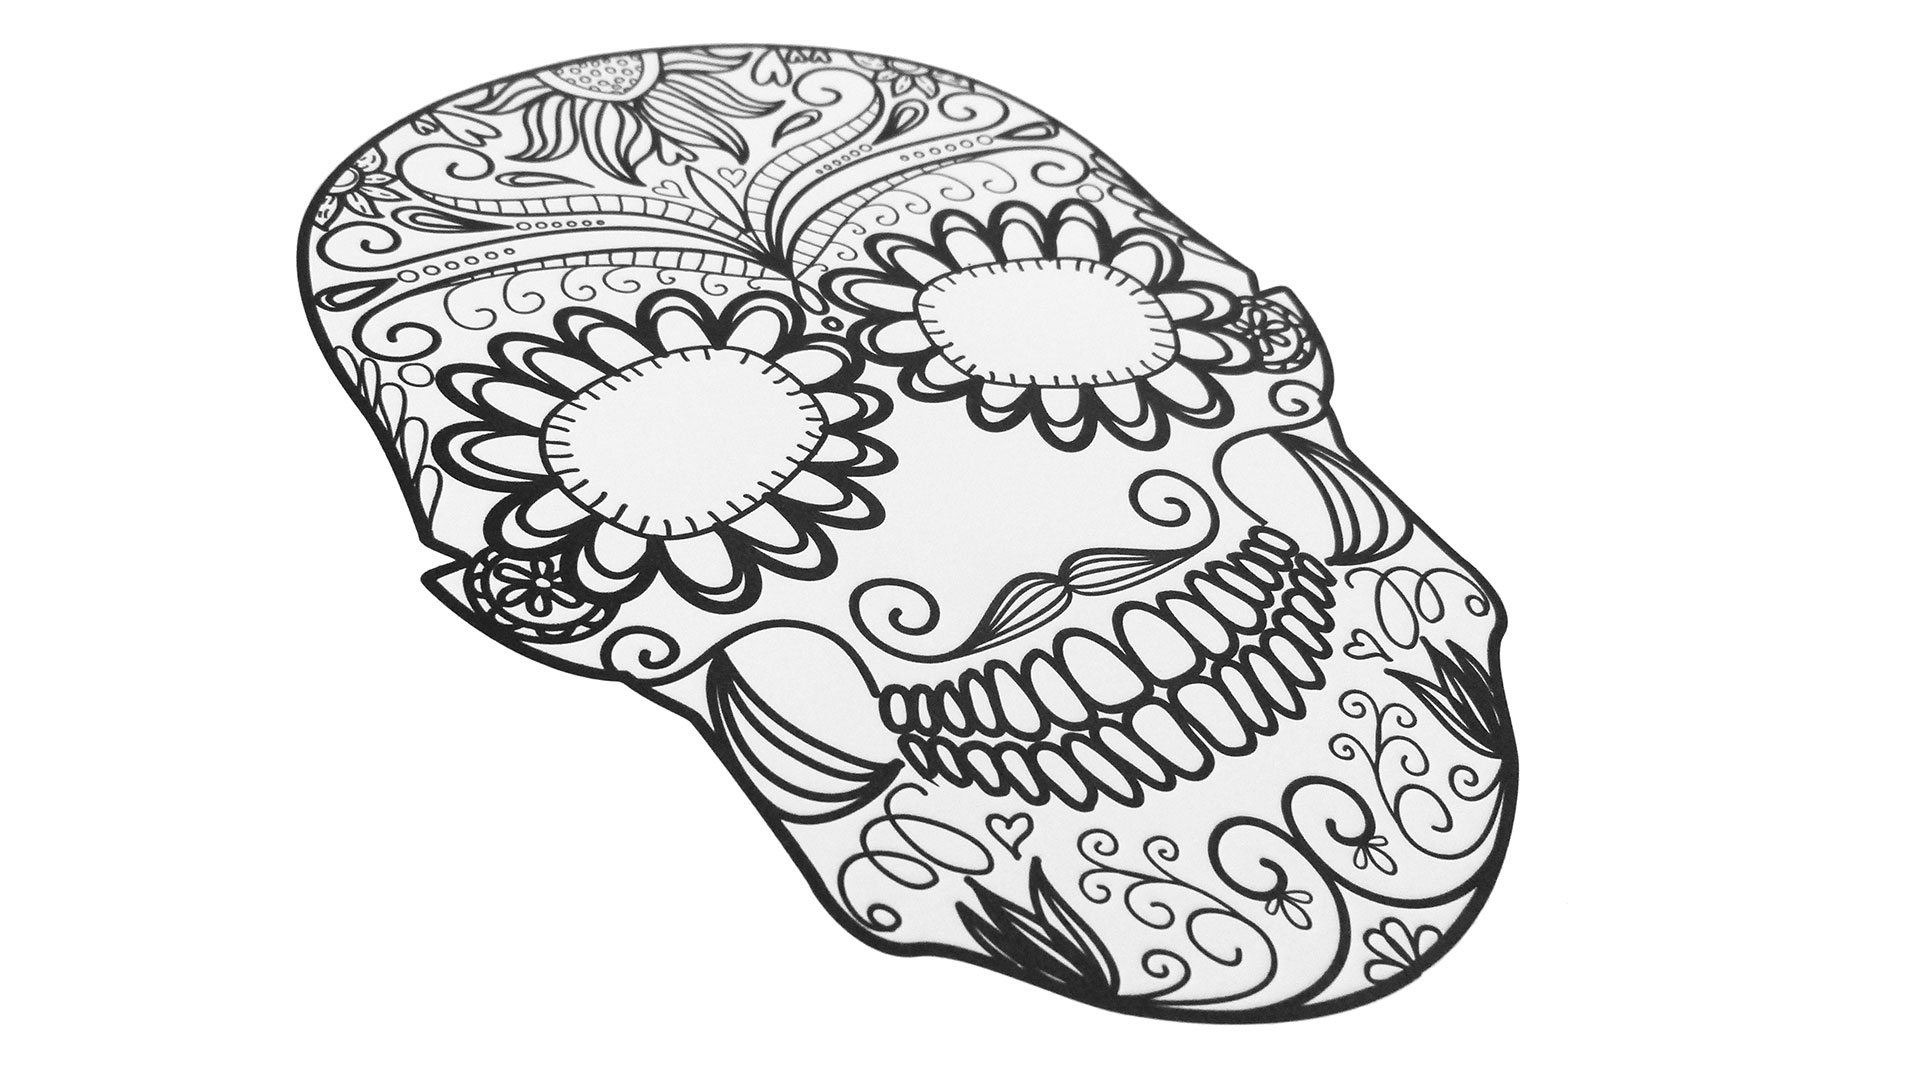 ADC Paper Show Digital and Letterpress Skull Sheets - PaperSpecs